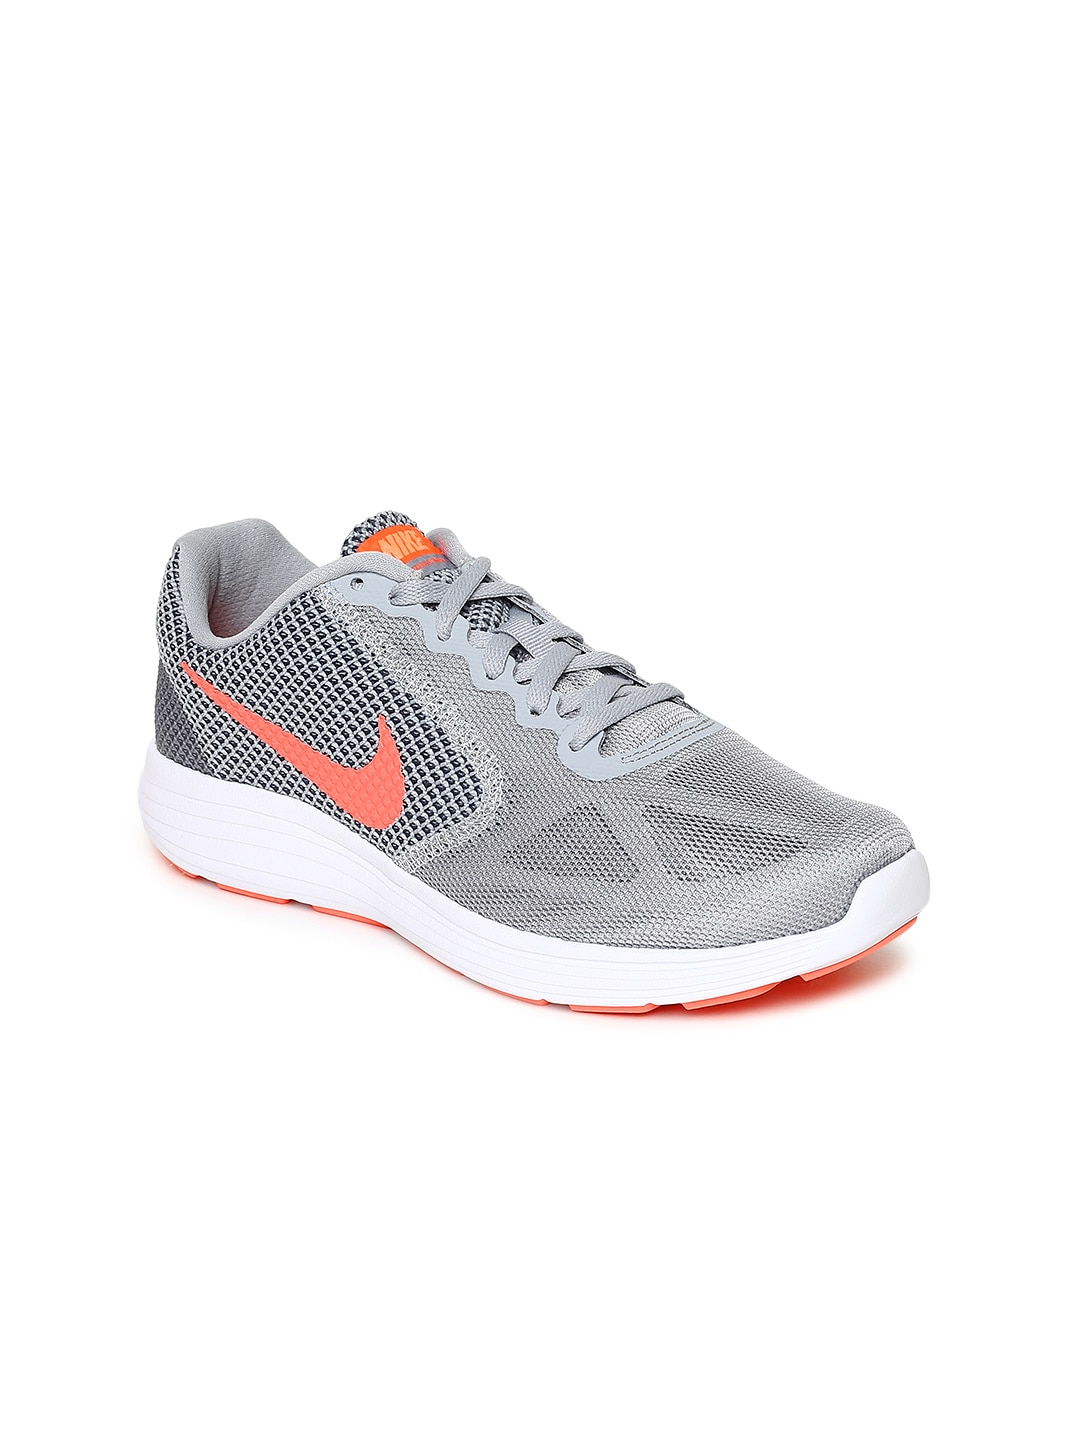 8a28379538b Nike Original Shoes Sports - Buy Nike Original Shoes Sports online in India